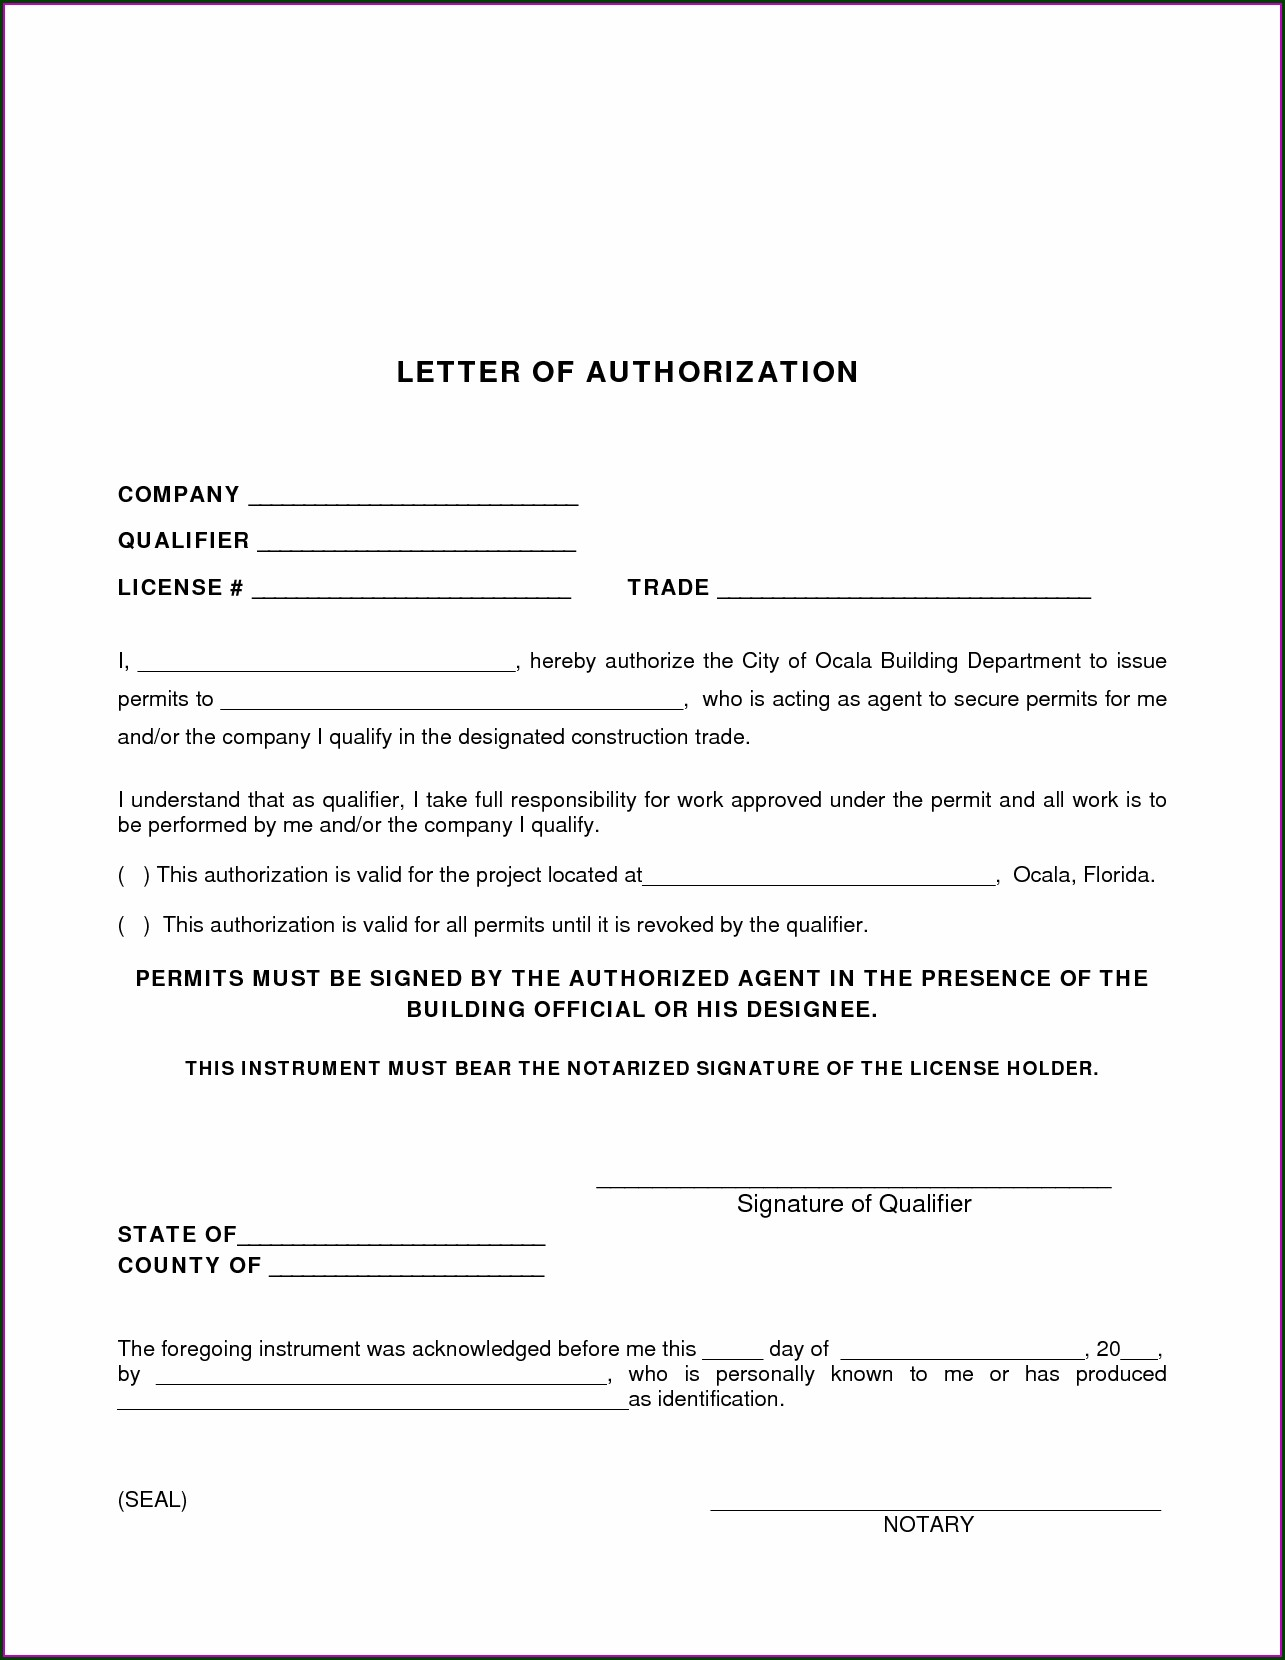 Child Development Permit Worksheet